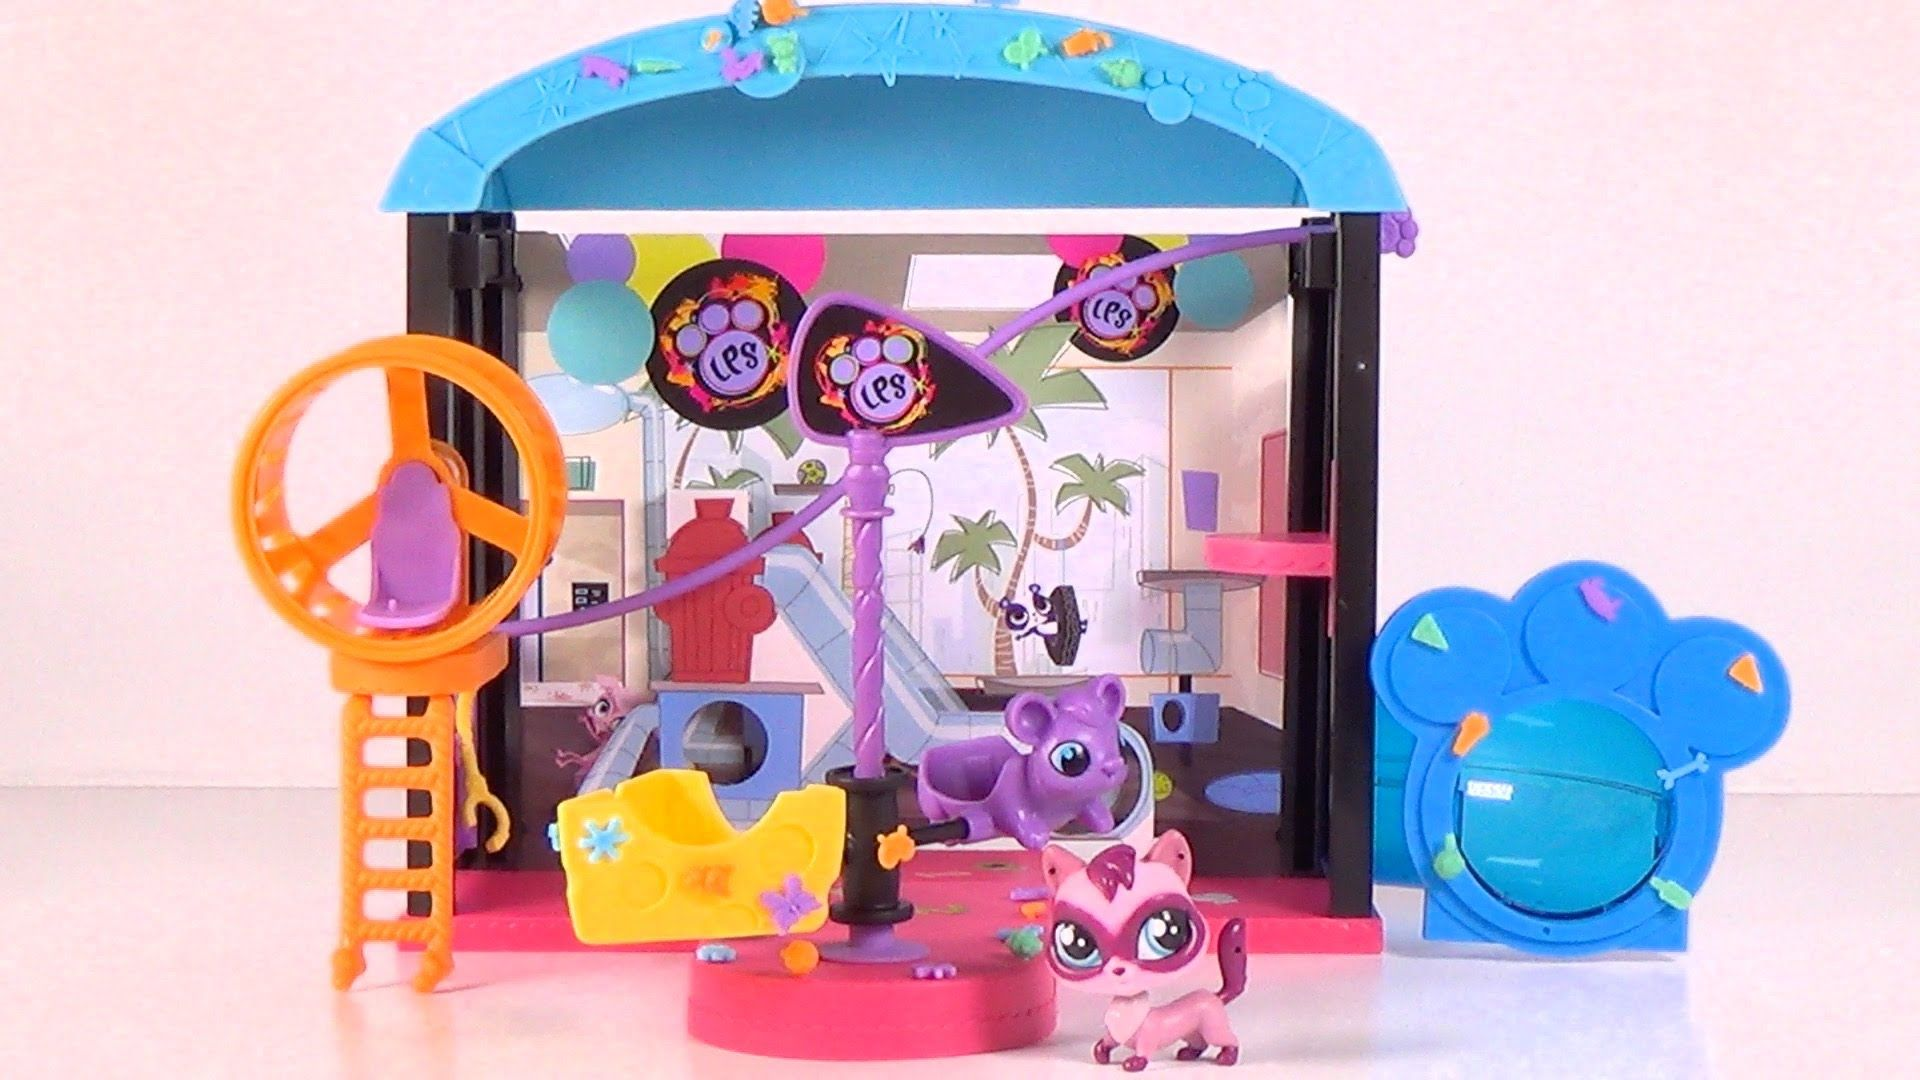 Littlest Pet Shop Fun Park Playset Toy Unboxing and Play